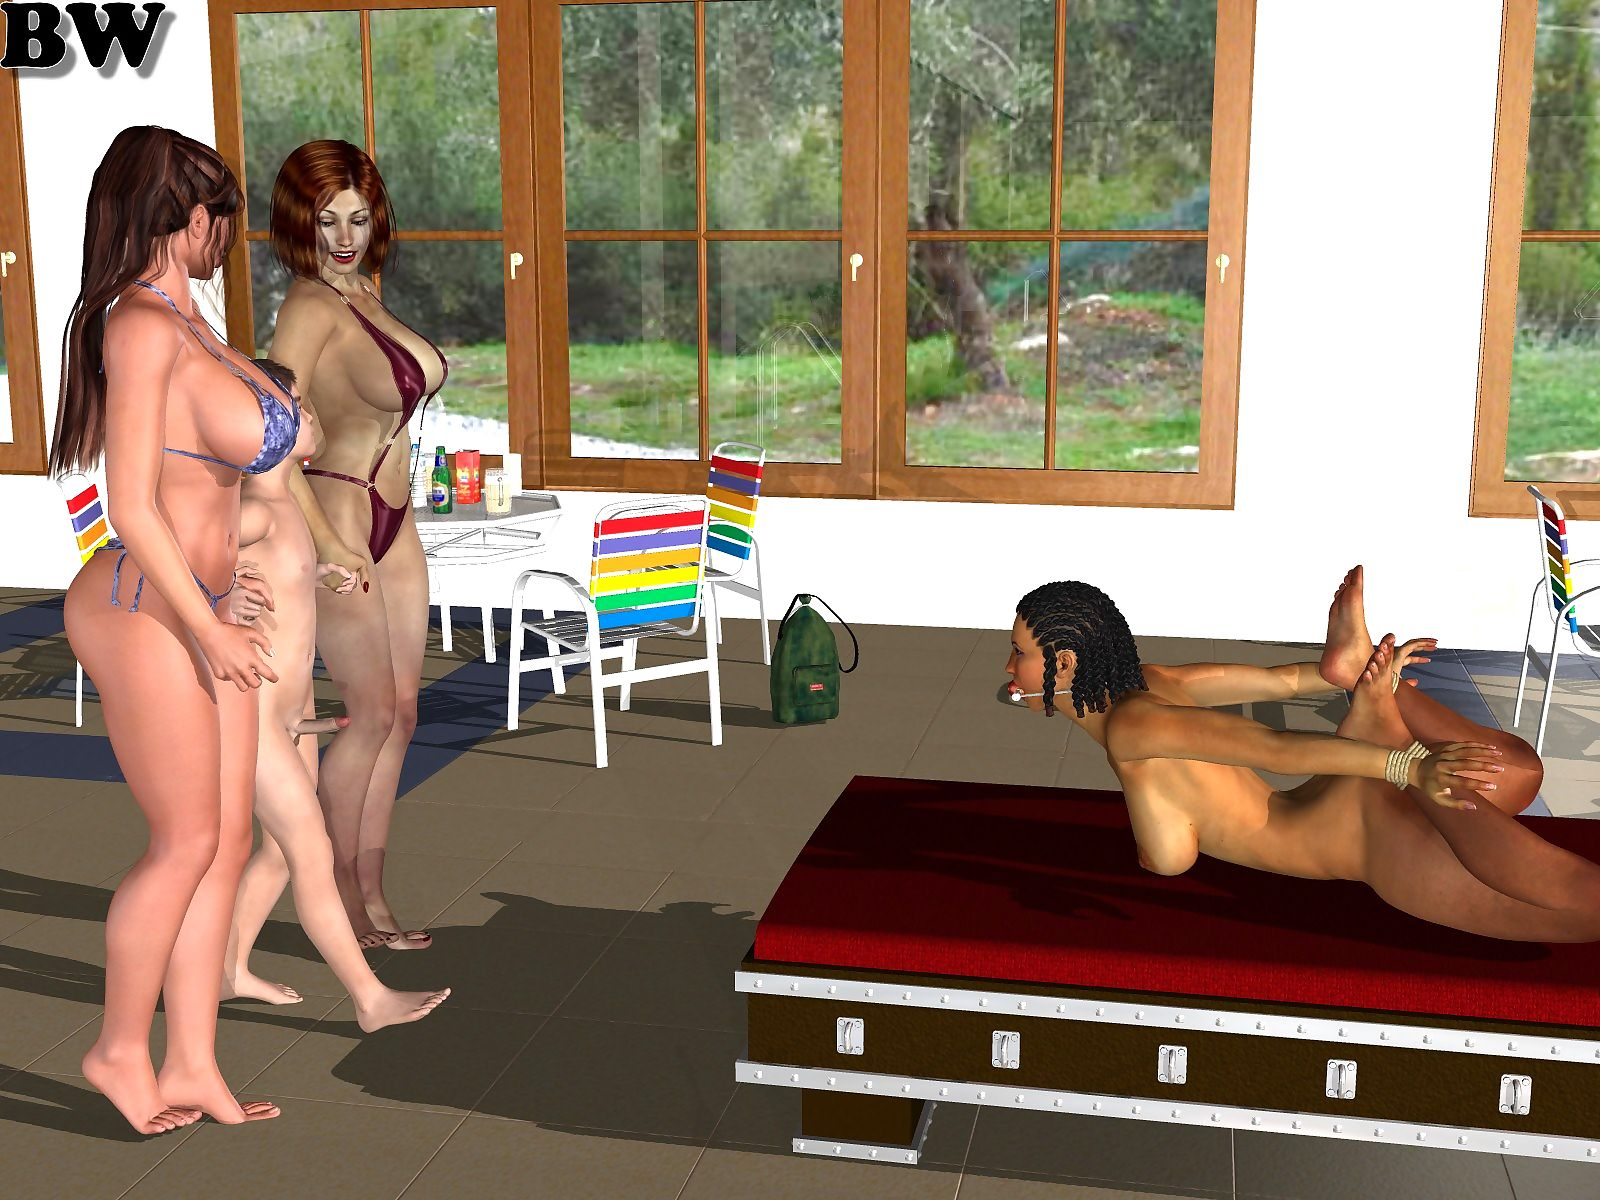 Hot sex with mother in pool- Incest